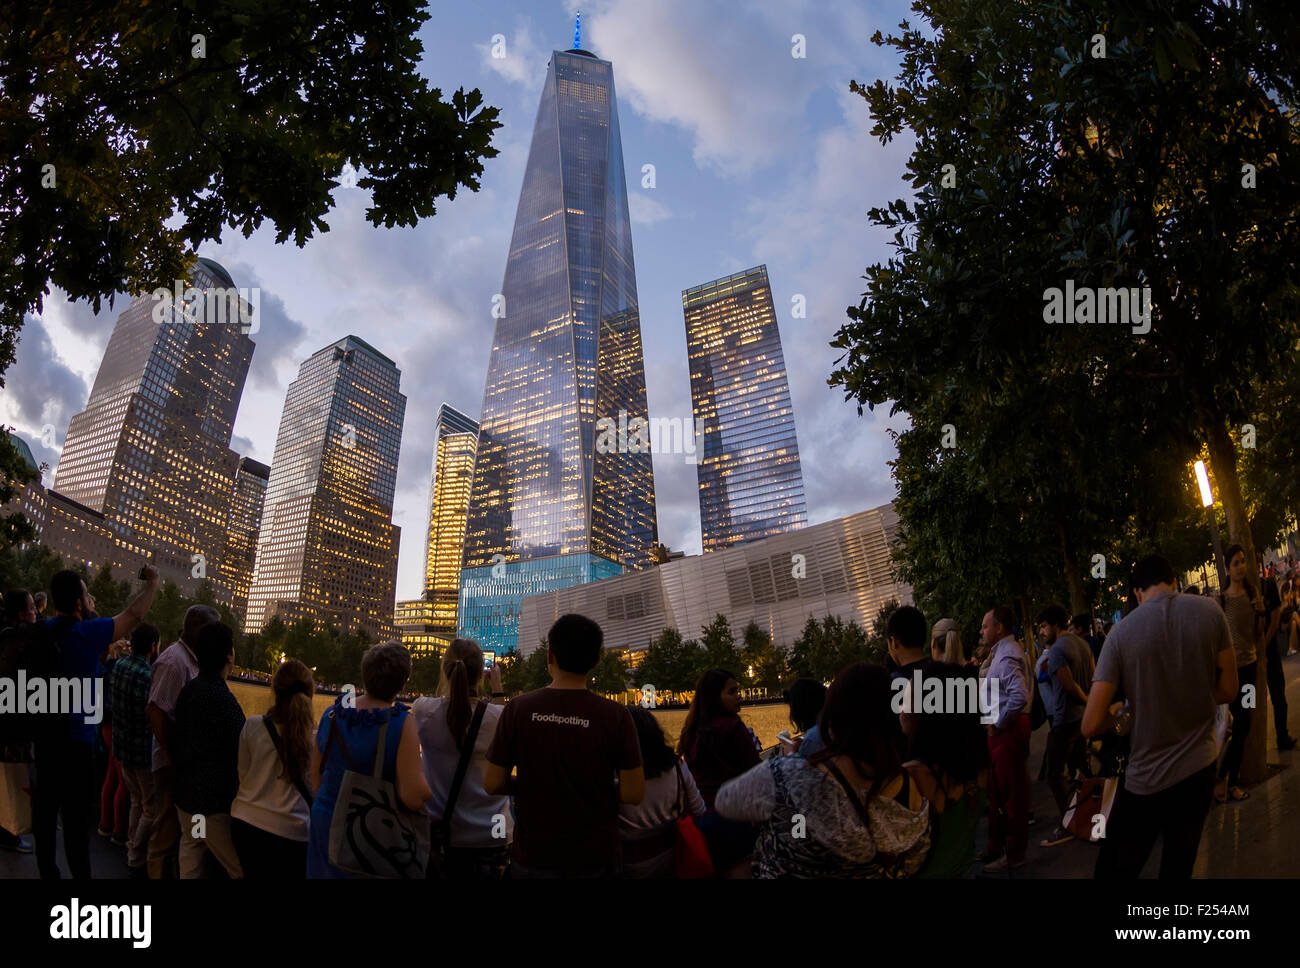 New York, NY - September 11th 2015 - People surround the reflecting pools at the 911 Memorial and Museum on the - Stock Image